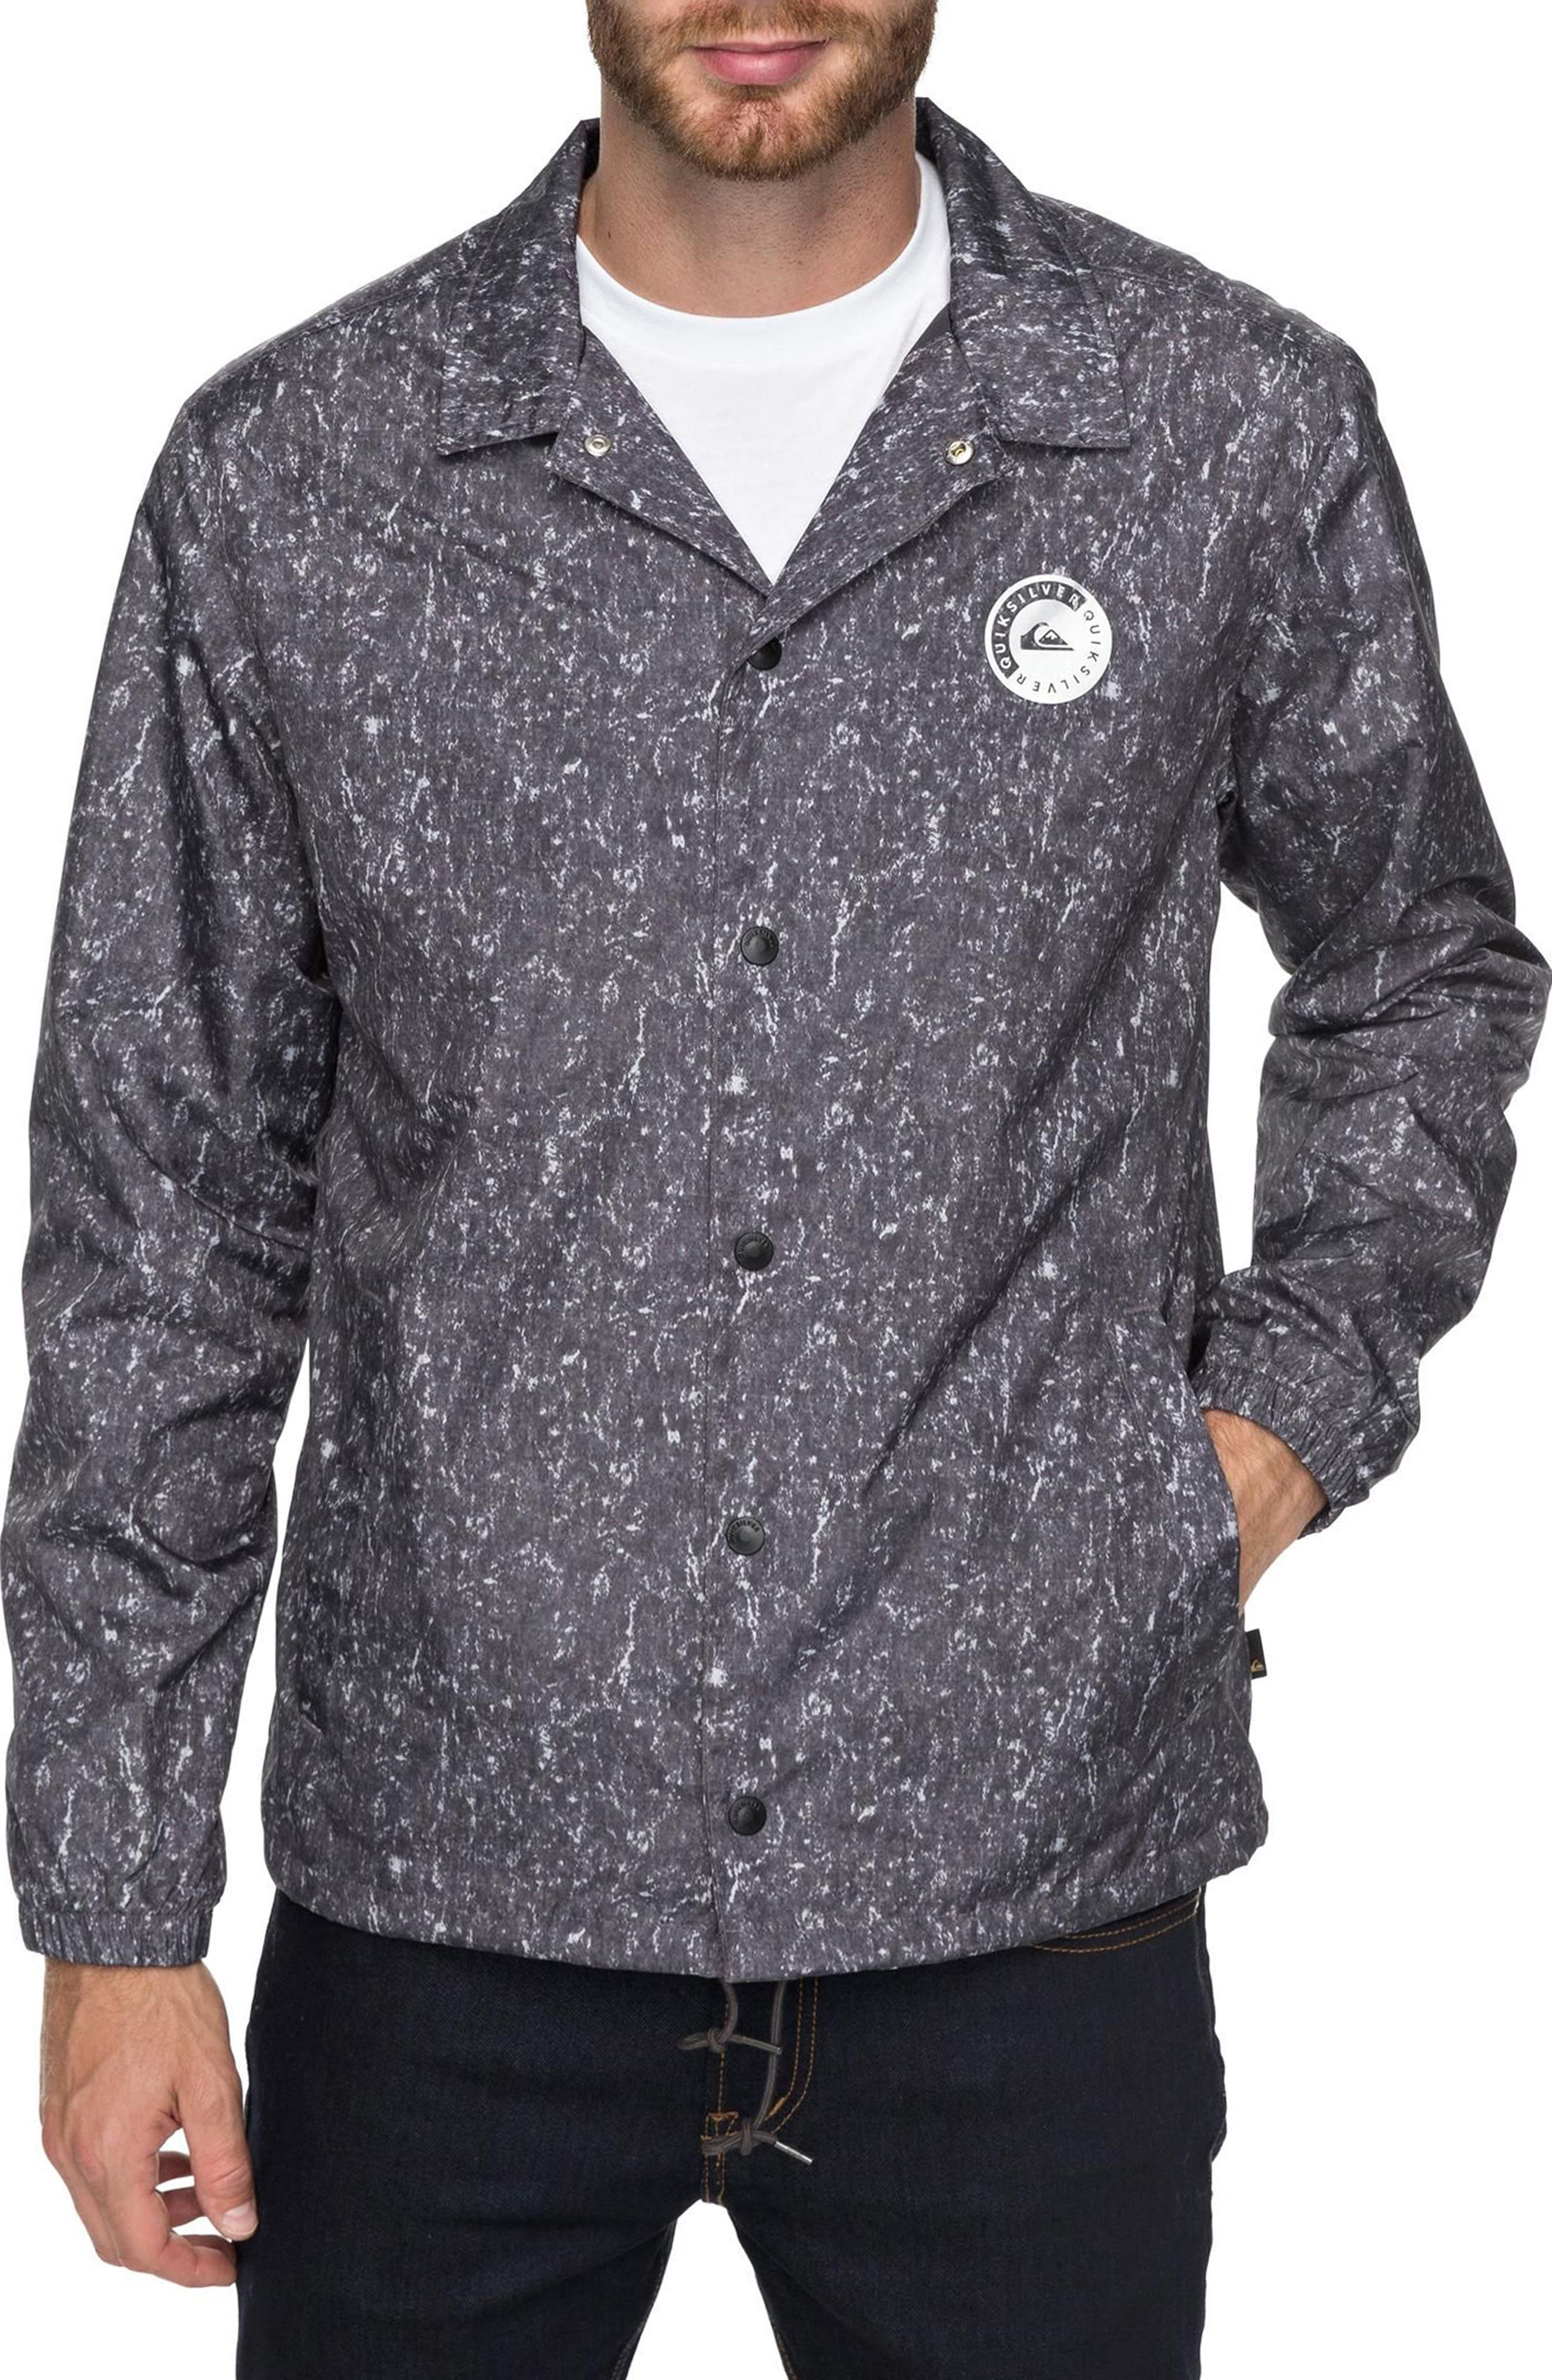 Quiksilver Surf Coach's Jacket